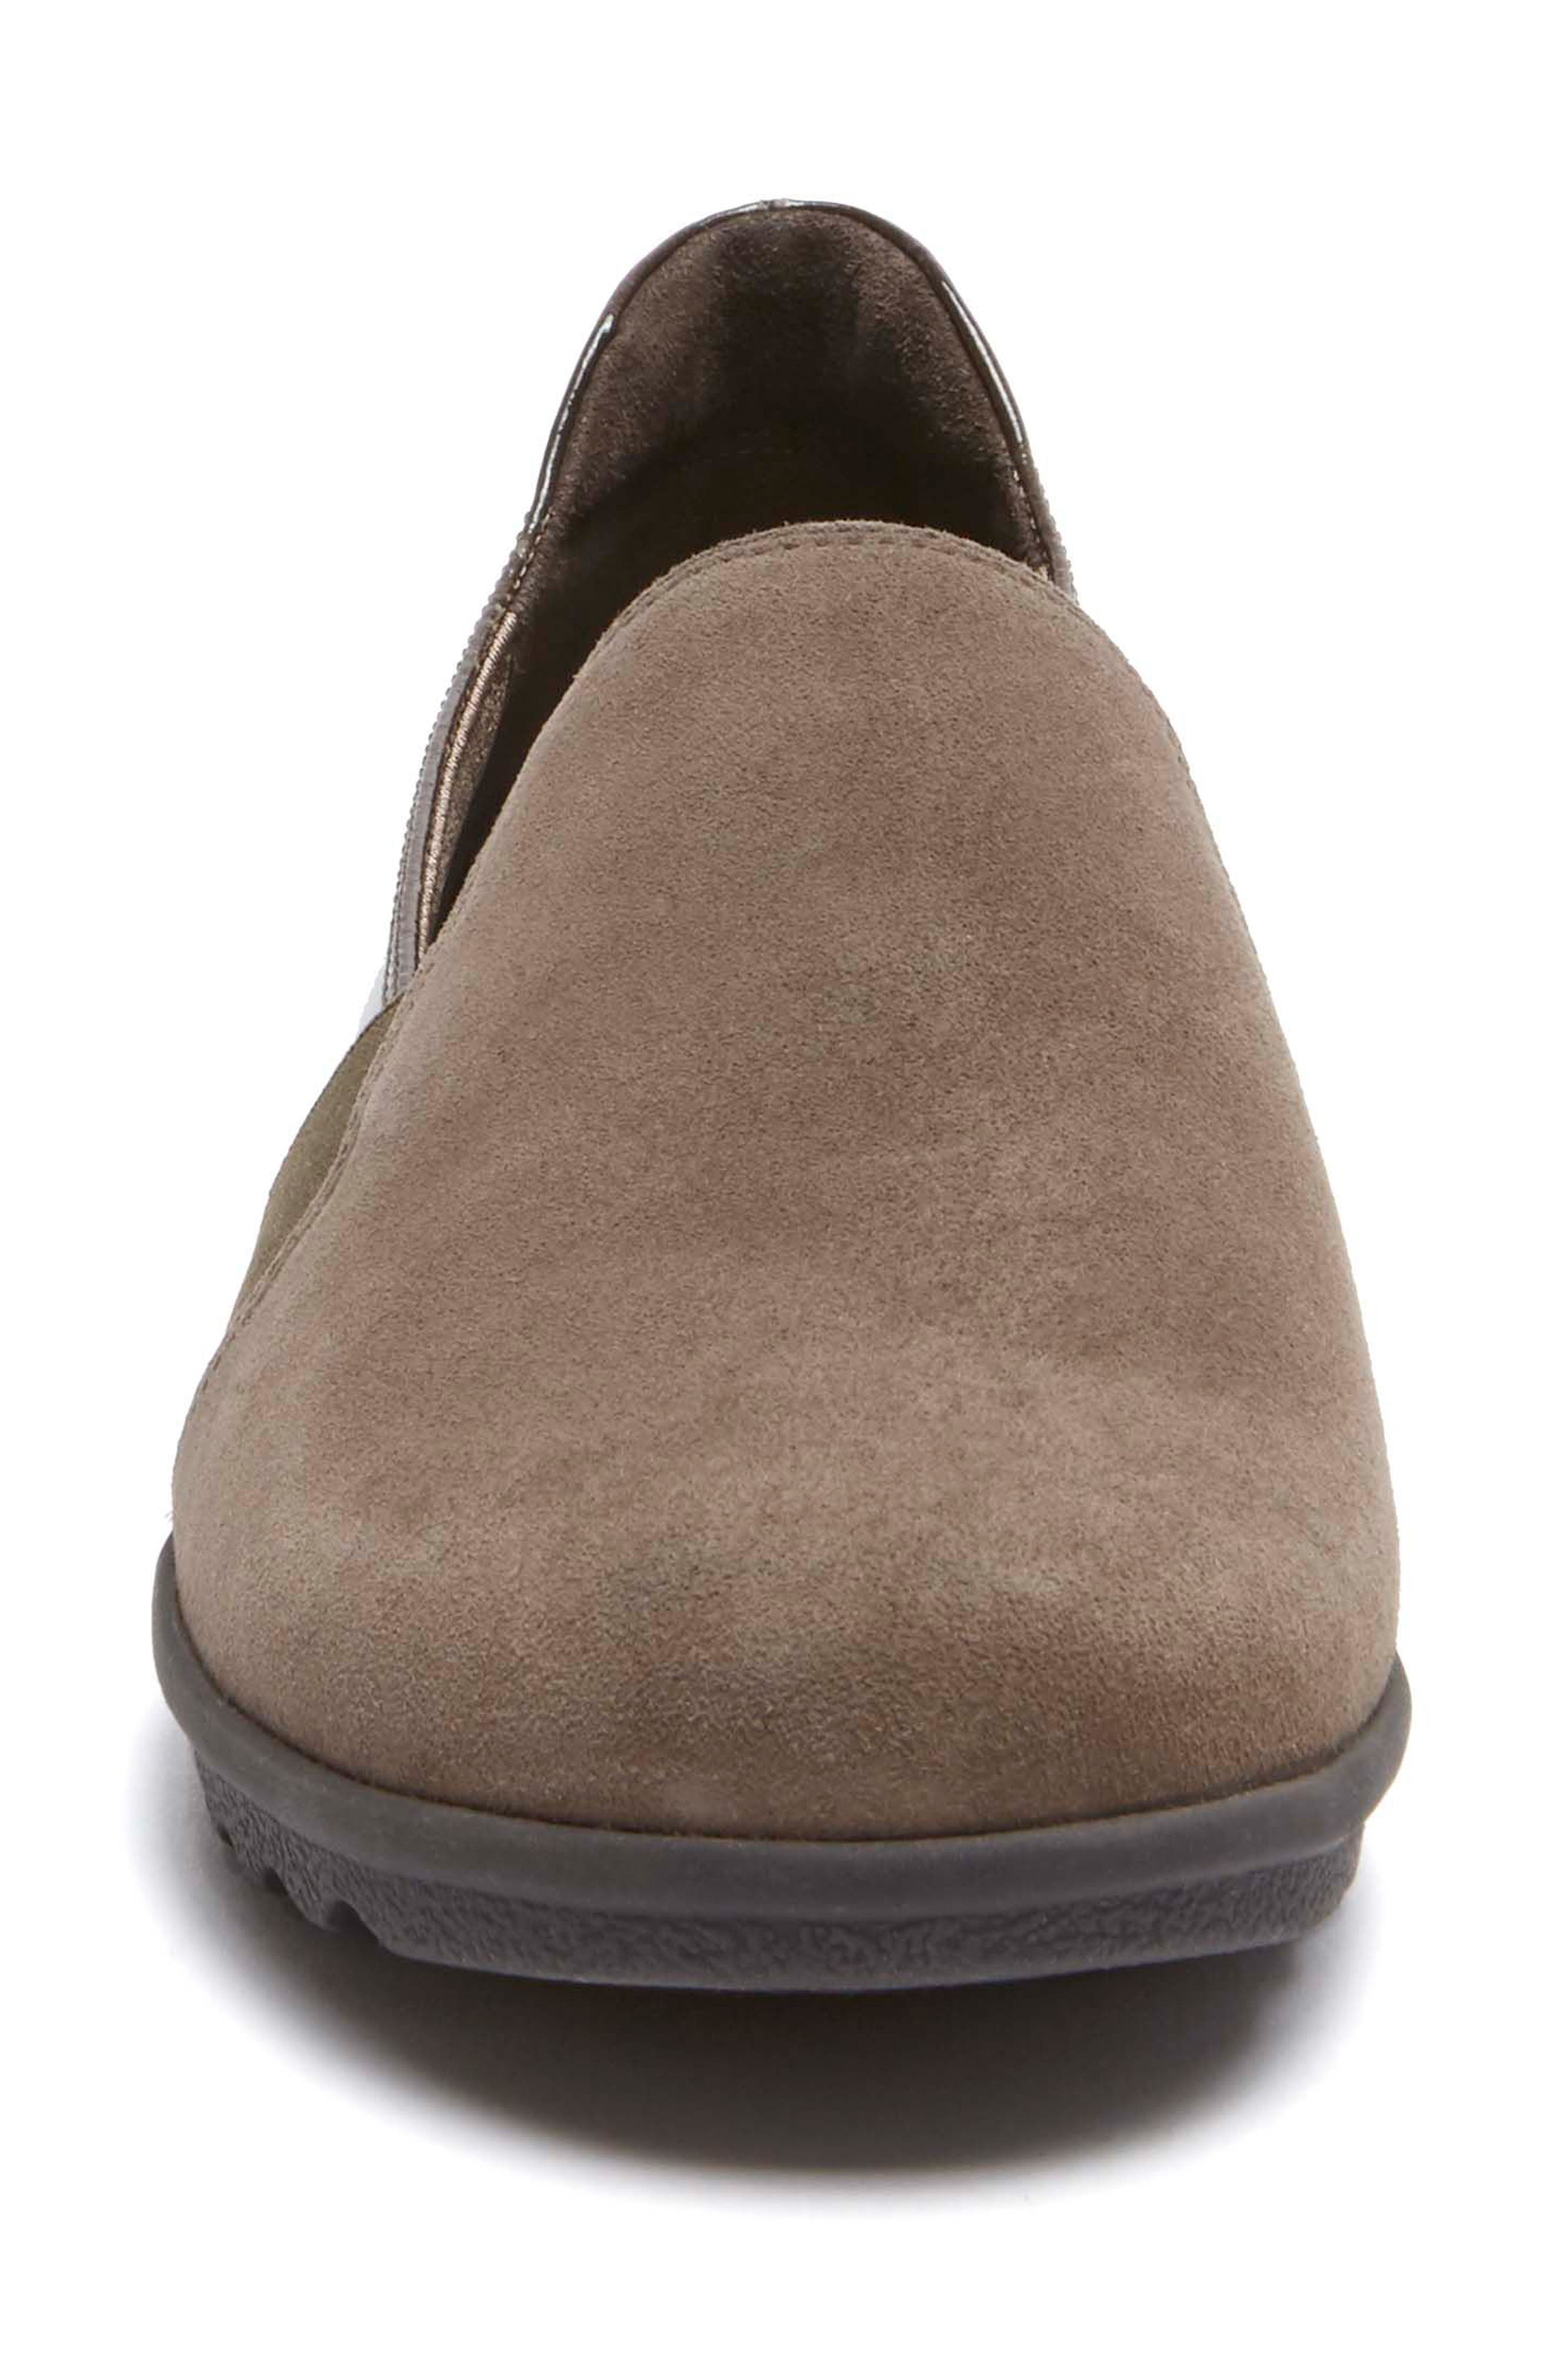 Chenole Loafer,                             Alternate thumbnail 4, color,                             Olive/ Grey Suede